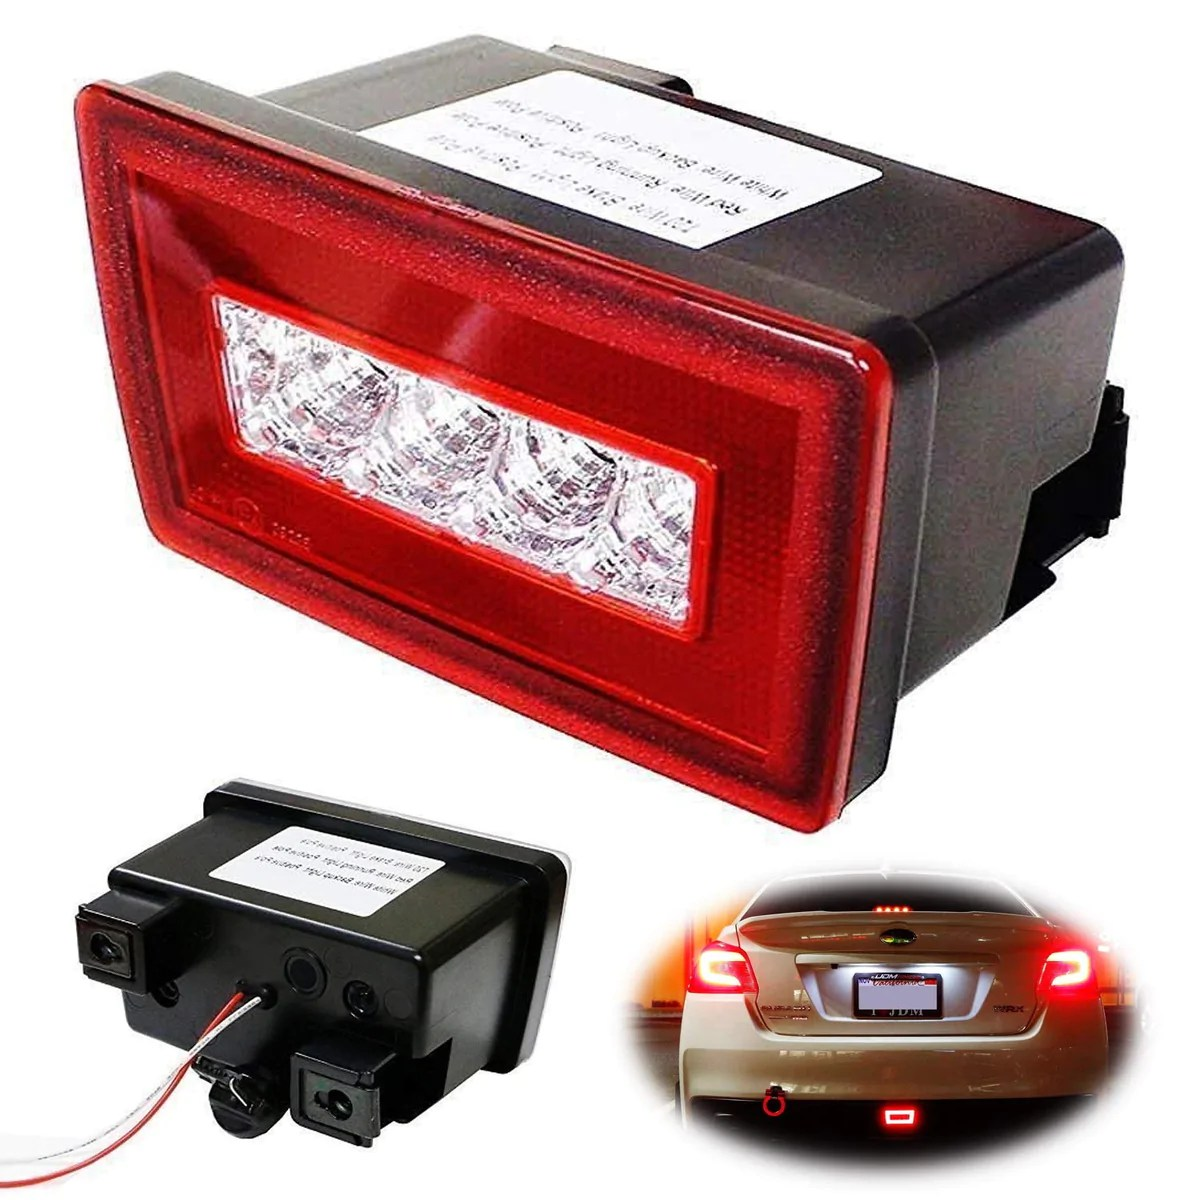 hight resolution of red or smoked lens 3 in 1 led rear fog light assembly kit tail brake backup reverse light for 2011 up subaru impreza wrx sti or vx crosstrek with wire